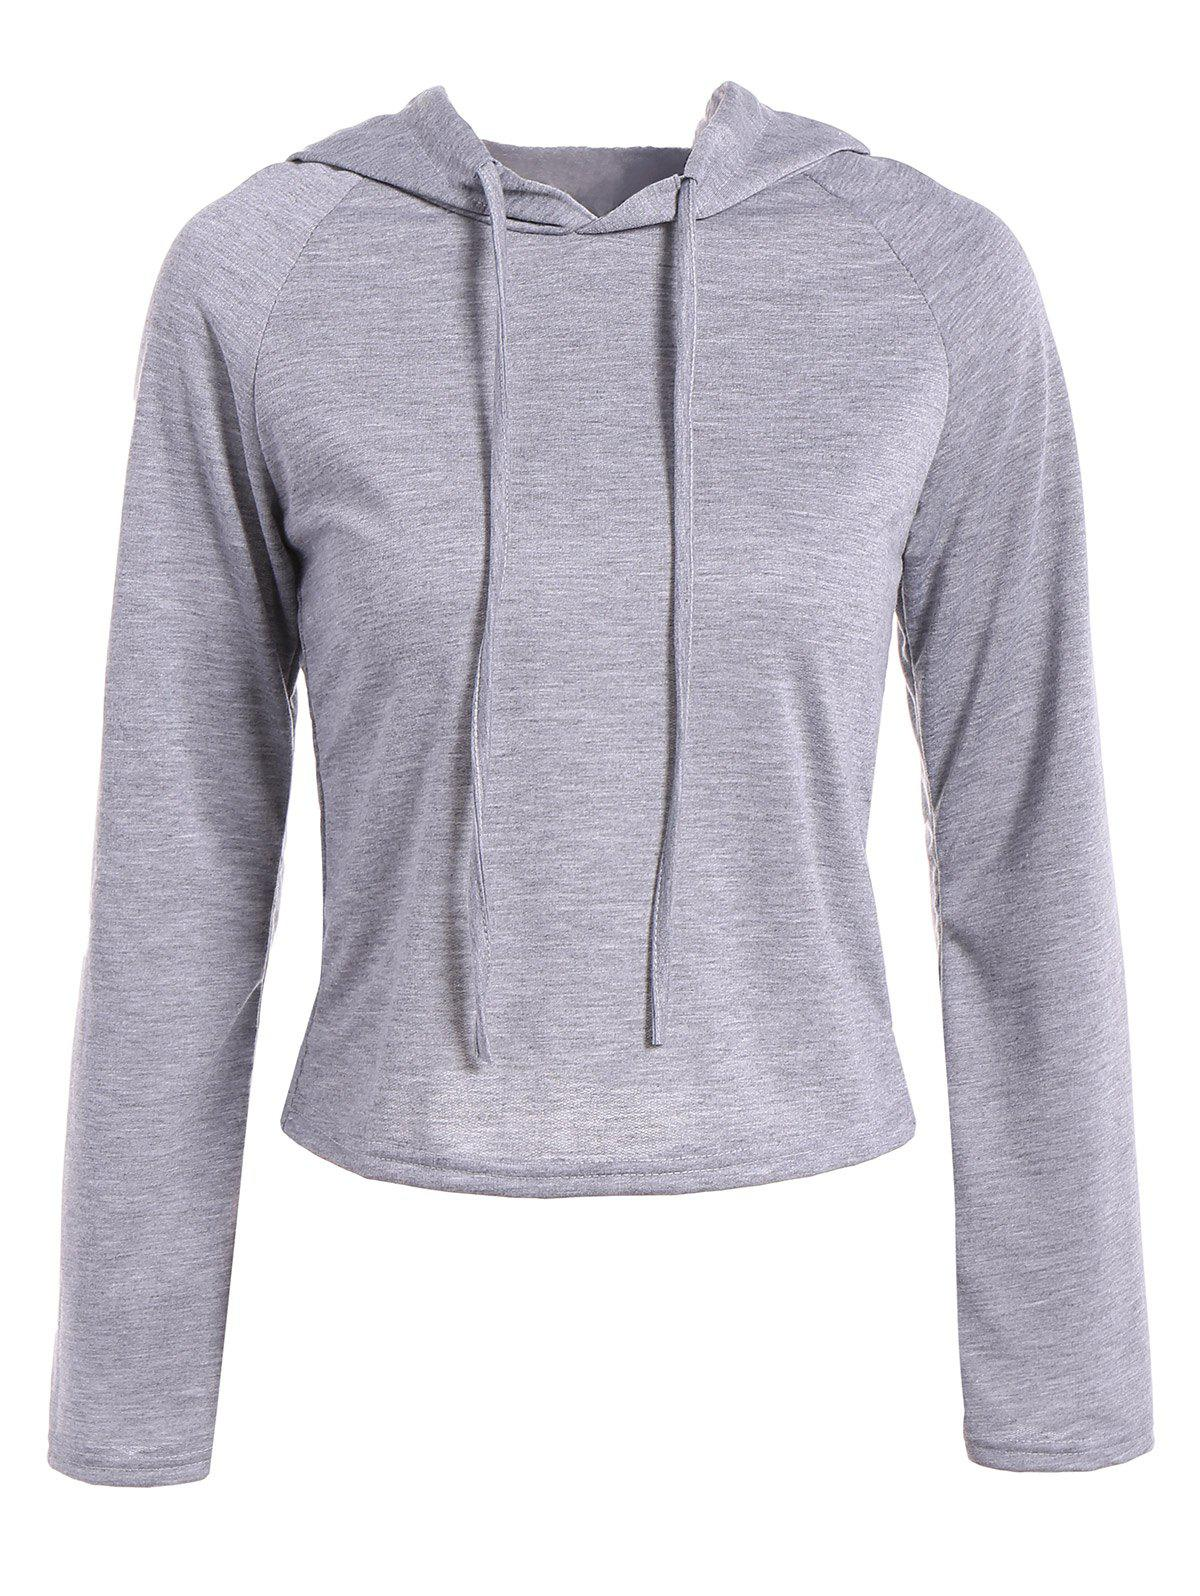 Raglan Sleeve Drawstring Hooded T-ShirtWomen<br><br><br>Size: M<br>Color: GRAY